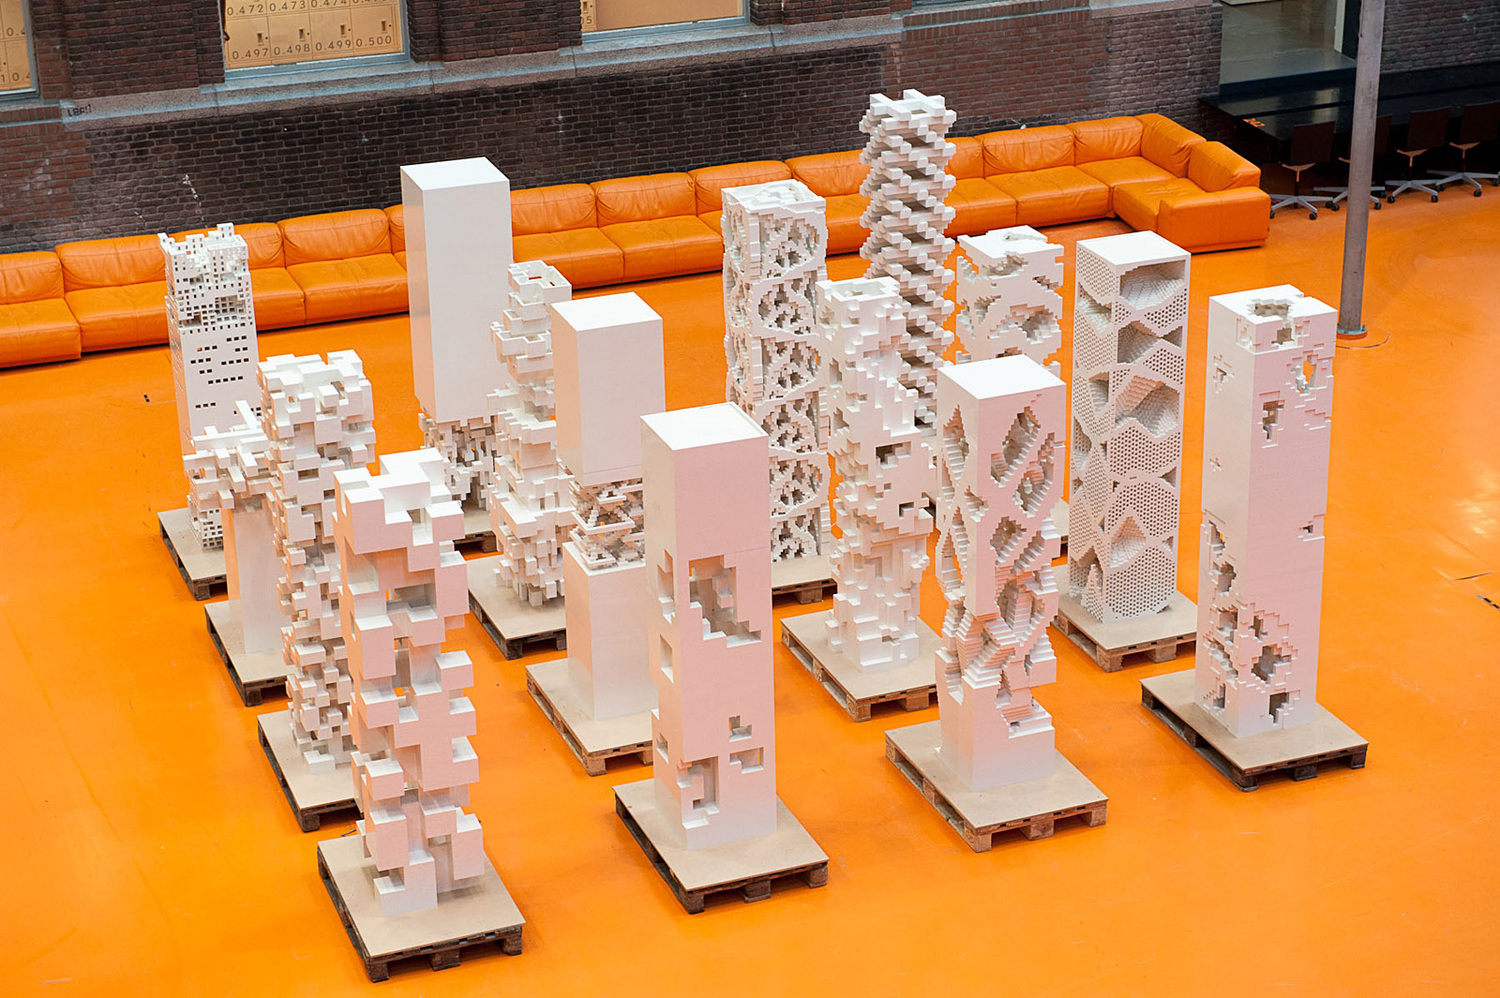 Mvrdv builds porous city exhibition with legos in cannes for Architecture lego